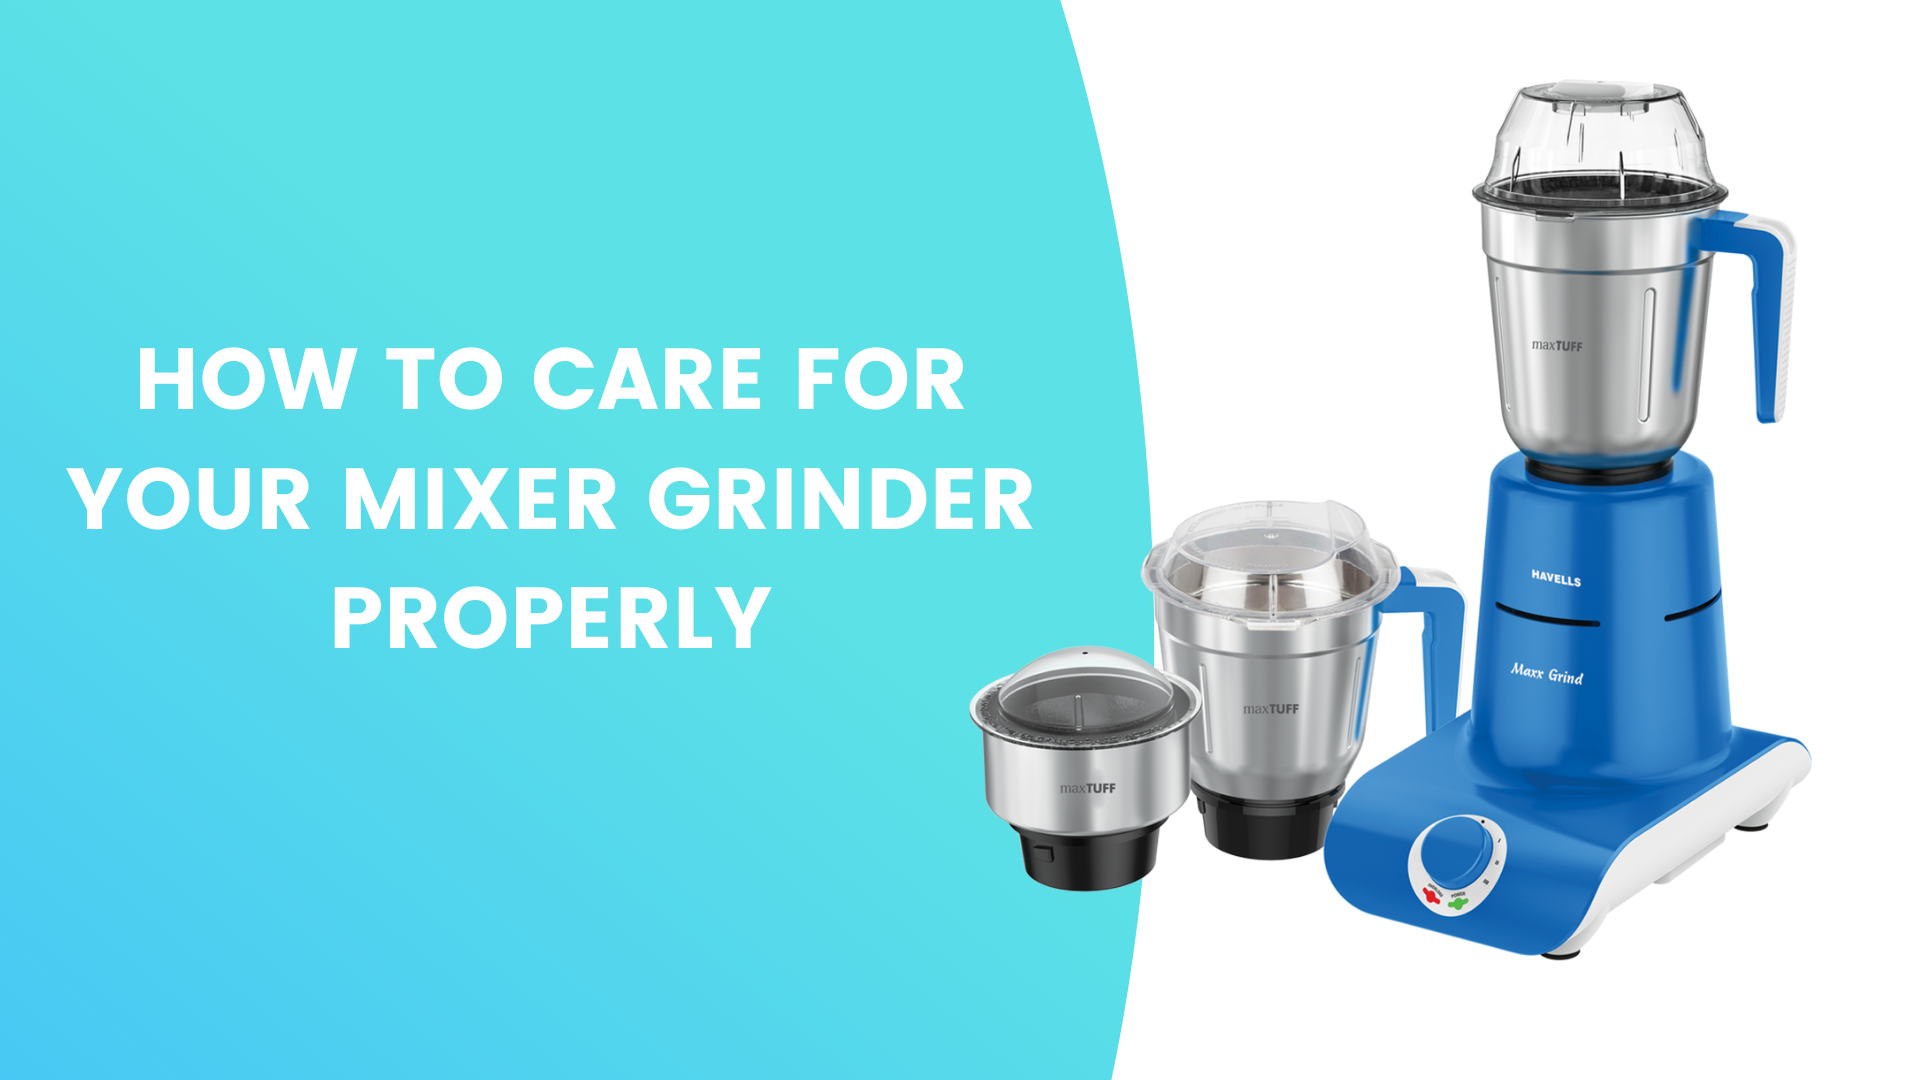 Mixer Grinder Care Guide 2021